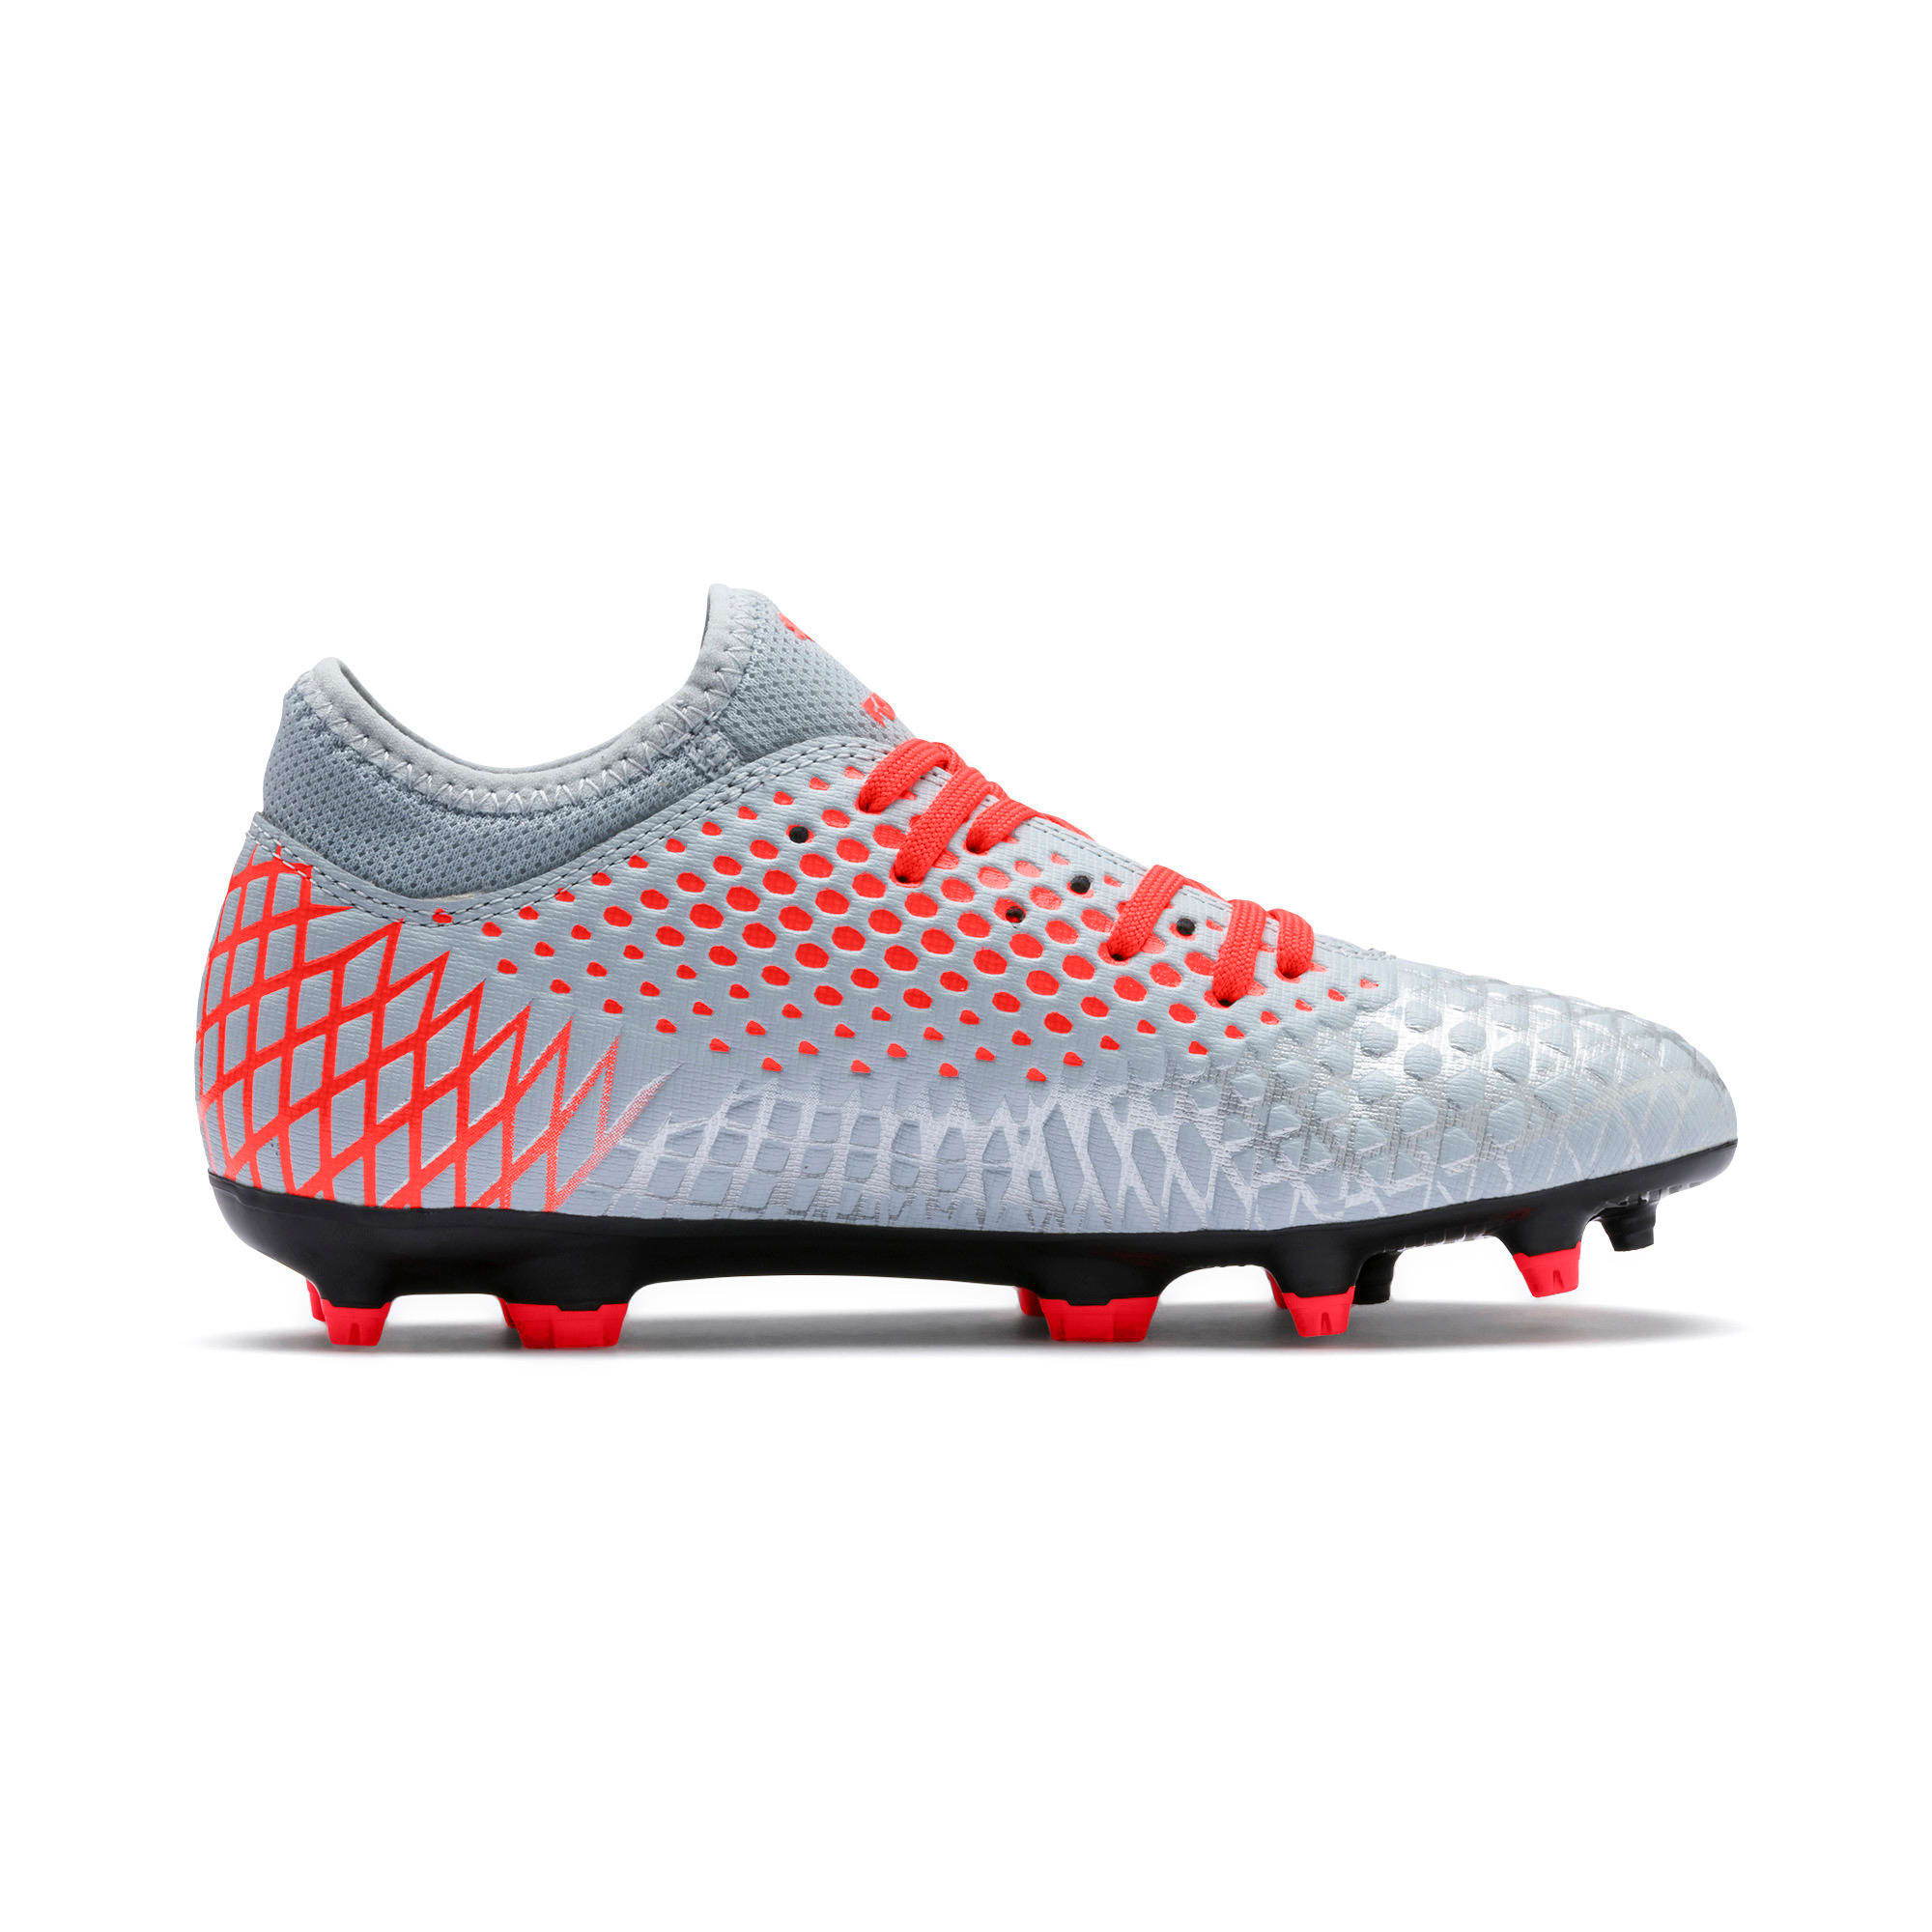 Thumbnail 5 of FUTURE 4.4 Youth Football Boots, Glacial Blue-Nrgy Red, medium